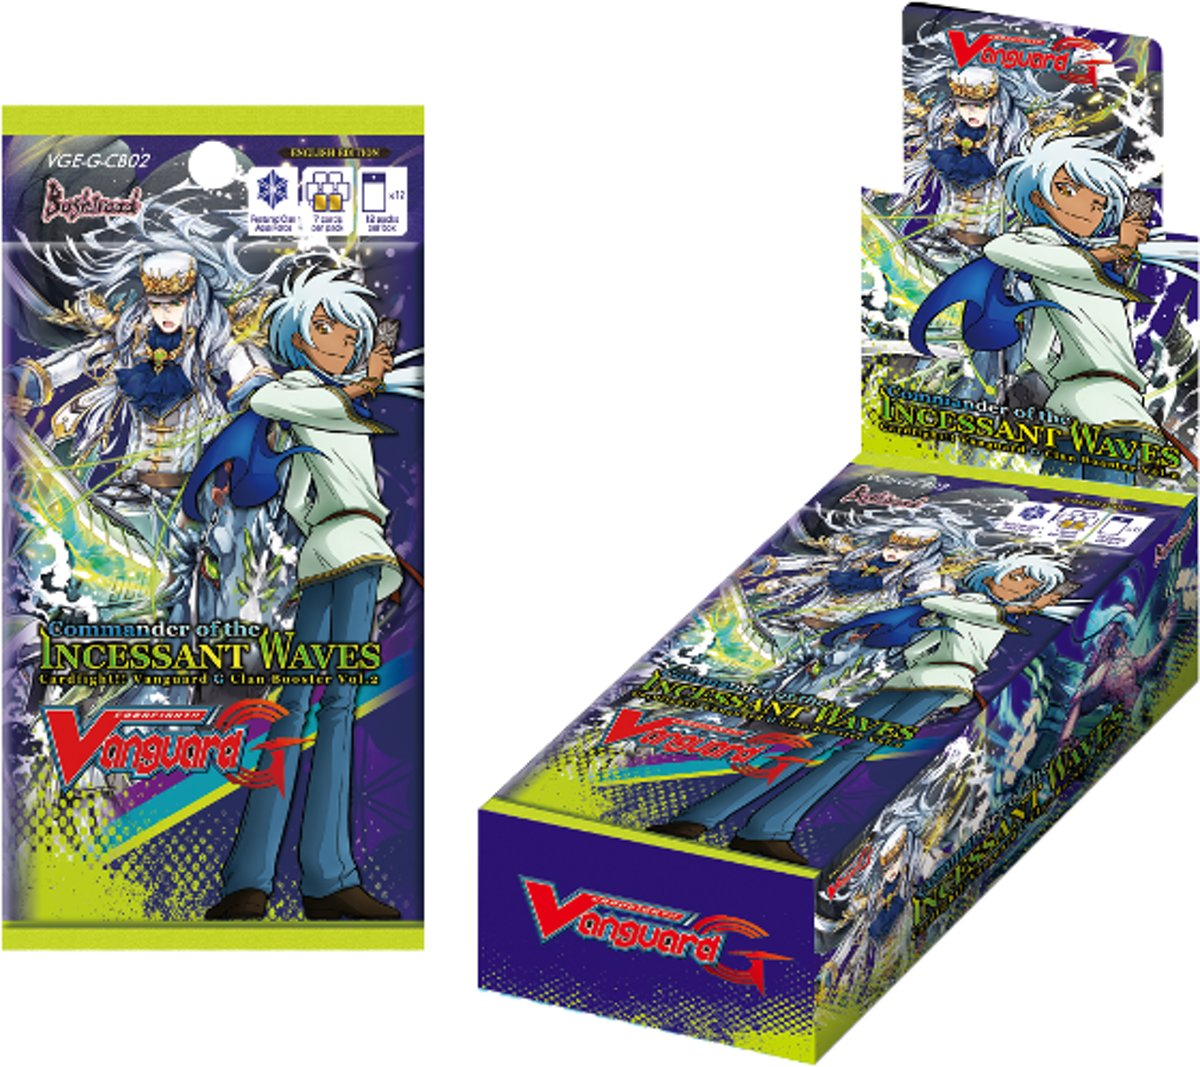 Vanguard: Commander of the Incessant Waves Clan Sealed Booster Display